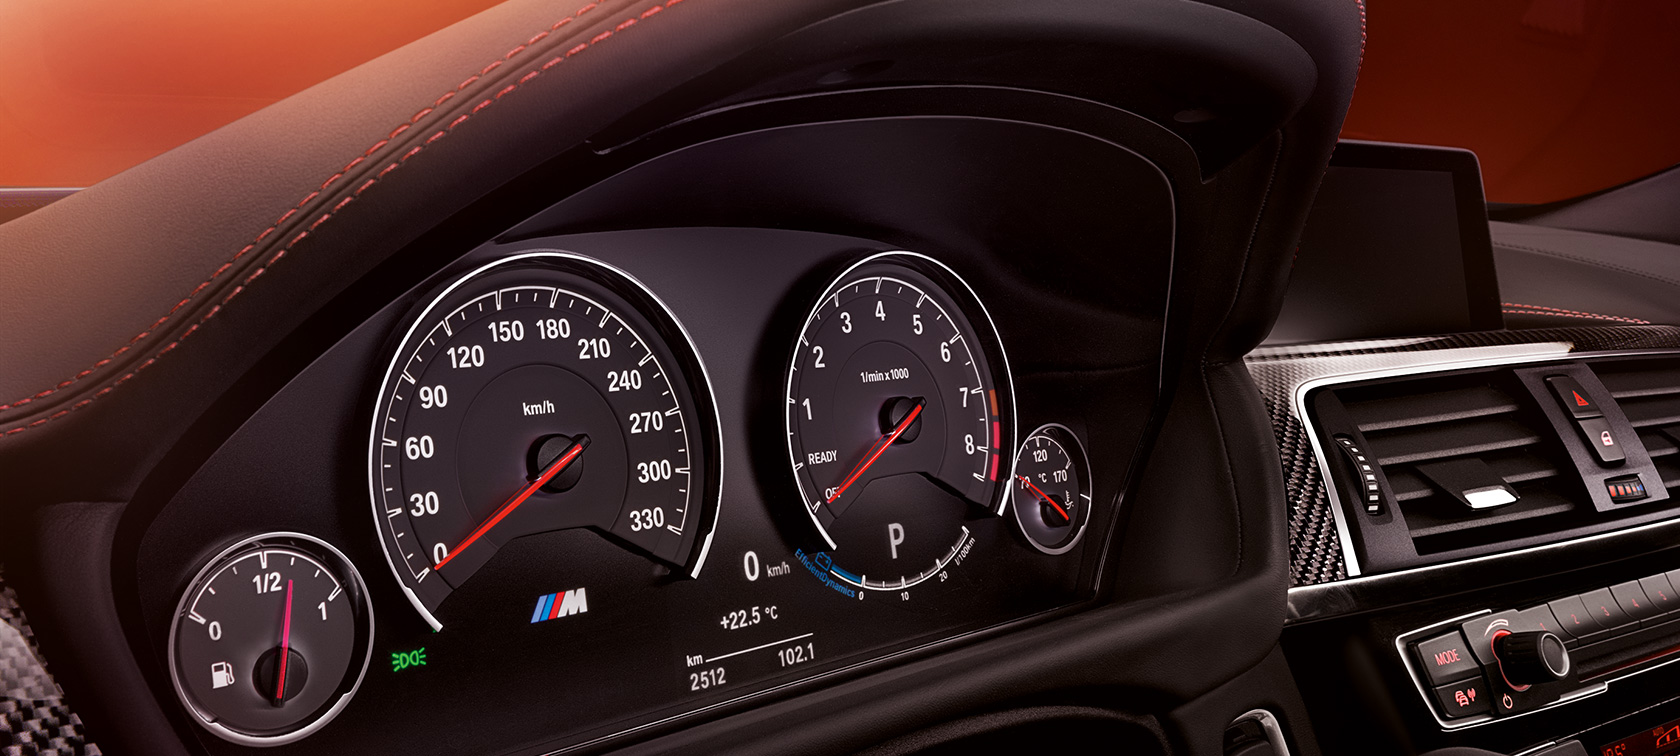 BMW M-Series M4-Coupe dashboard in black with red topstitch